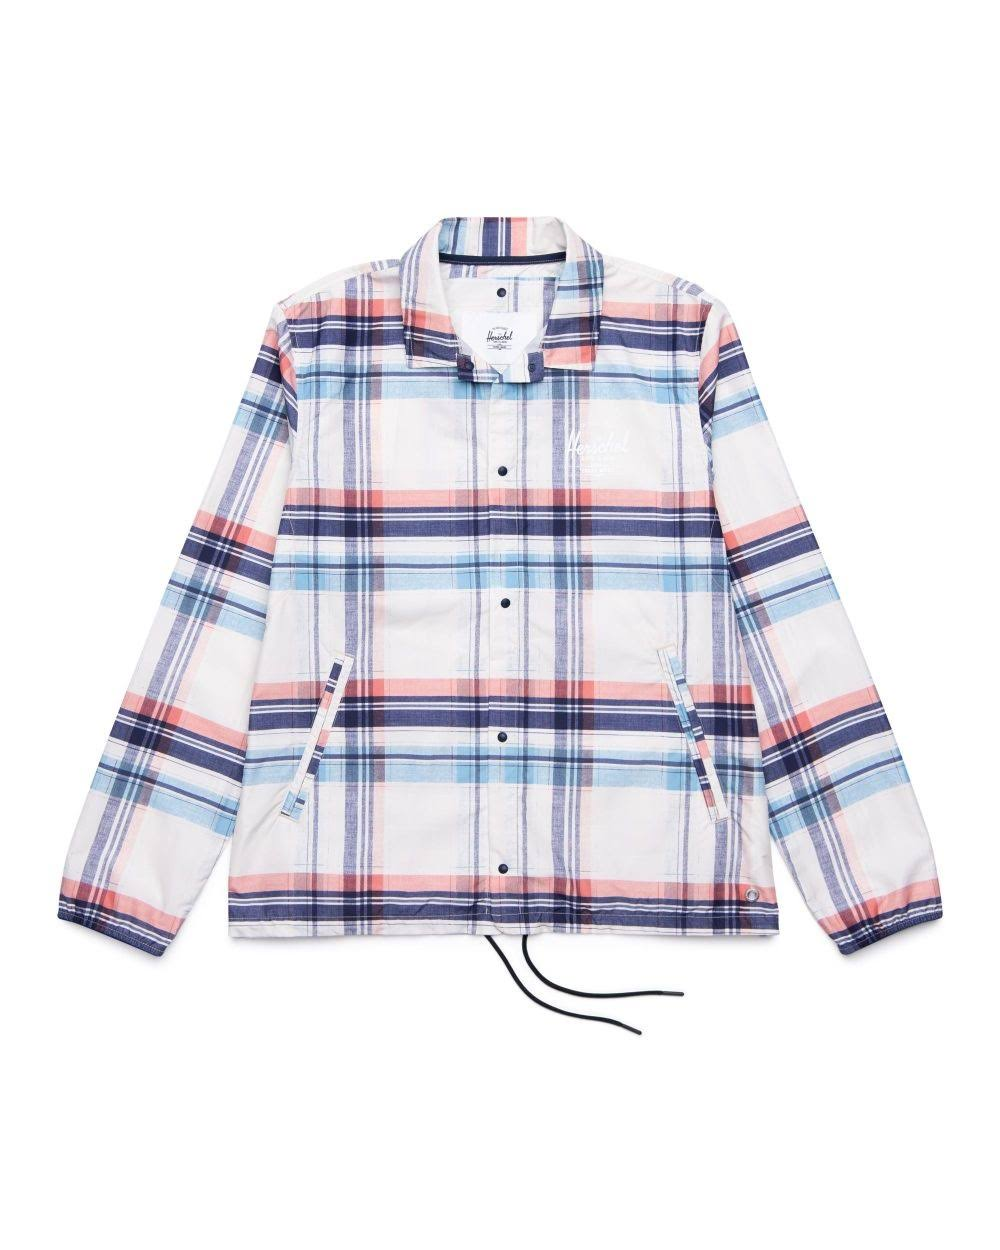 Peacoat Voyage Plaid Supply S Co Coach Herschel Jacket q8wPHYxXA